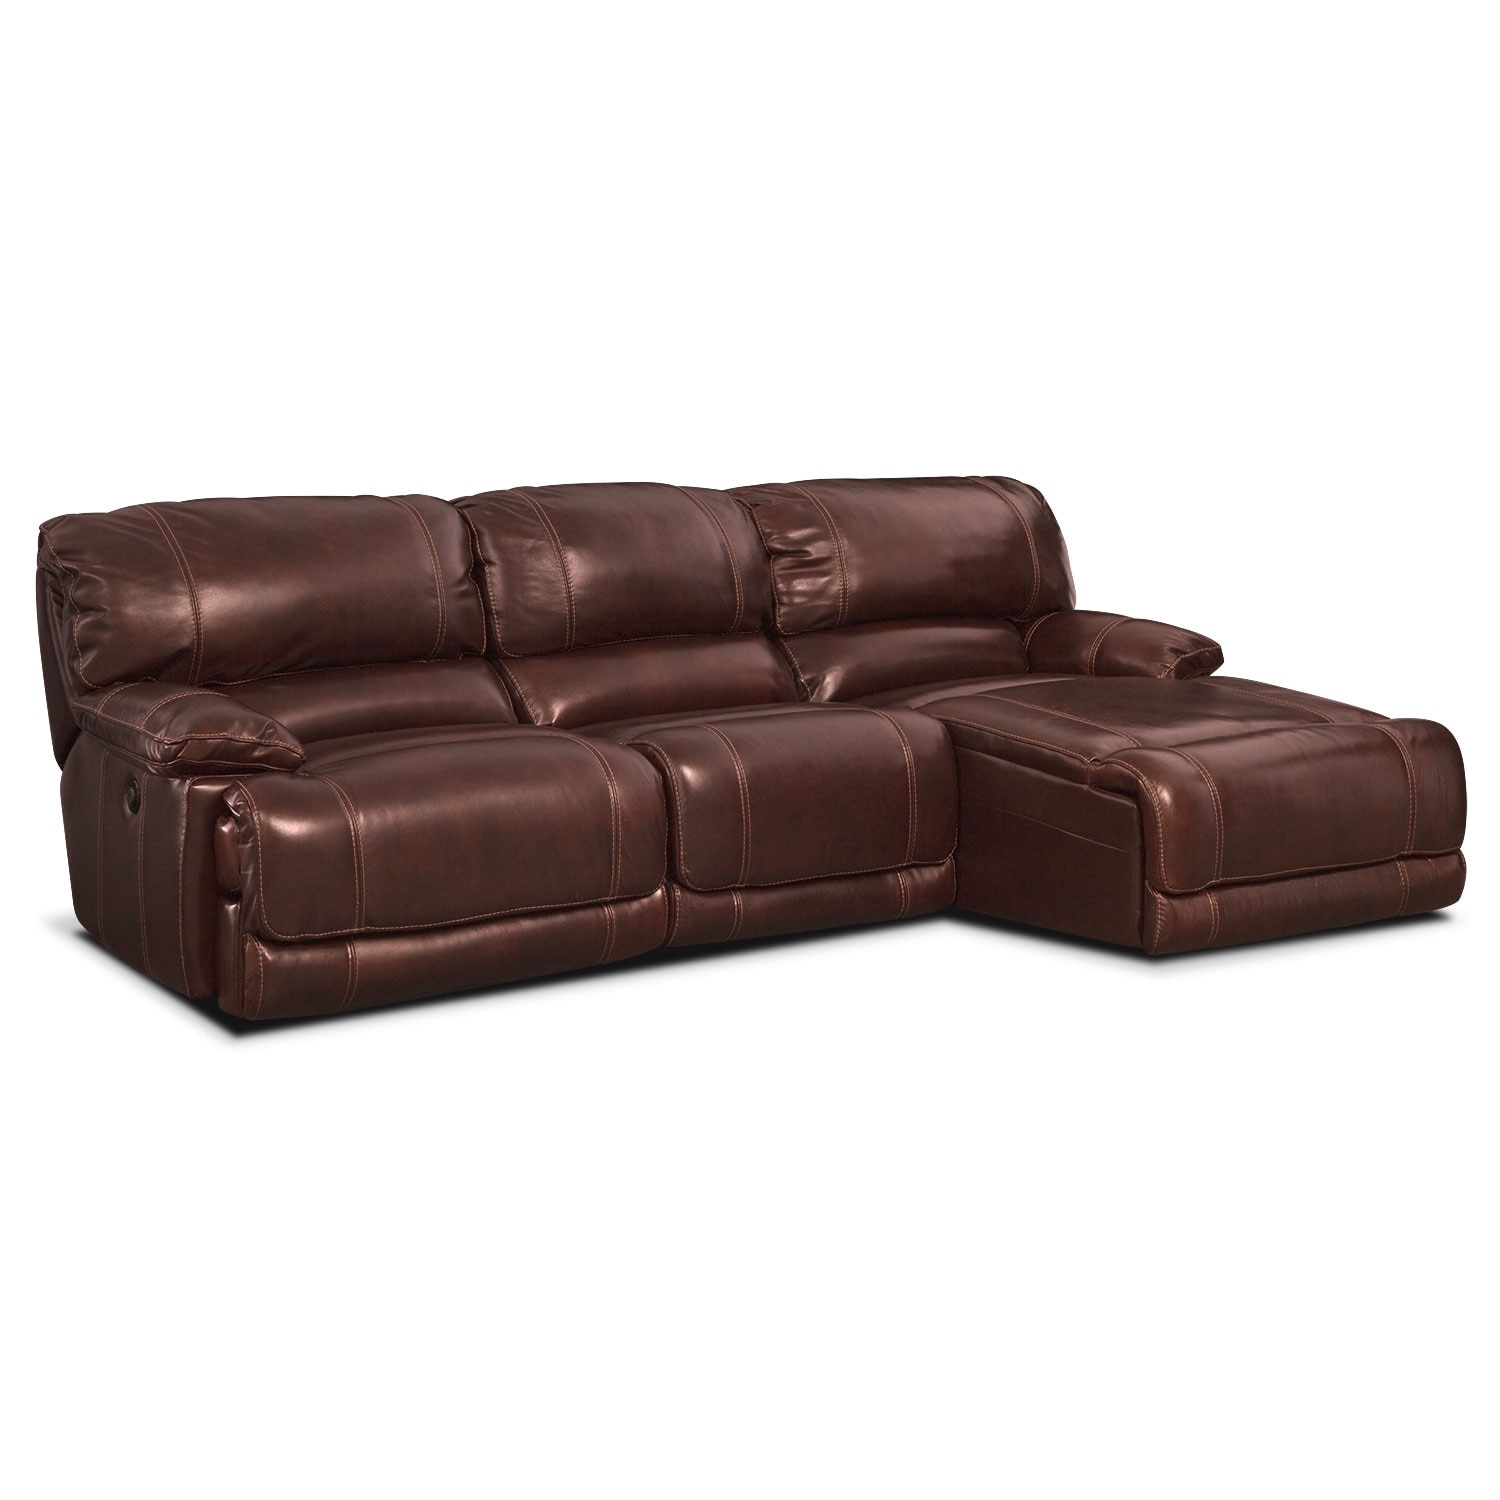 St Malo Power Recliner Burgundy Value City Furniture